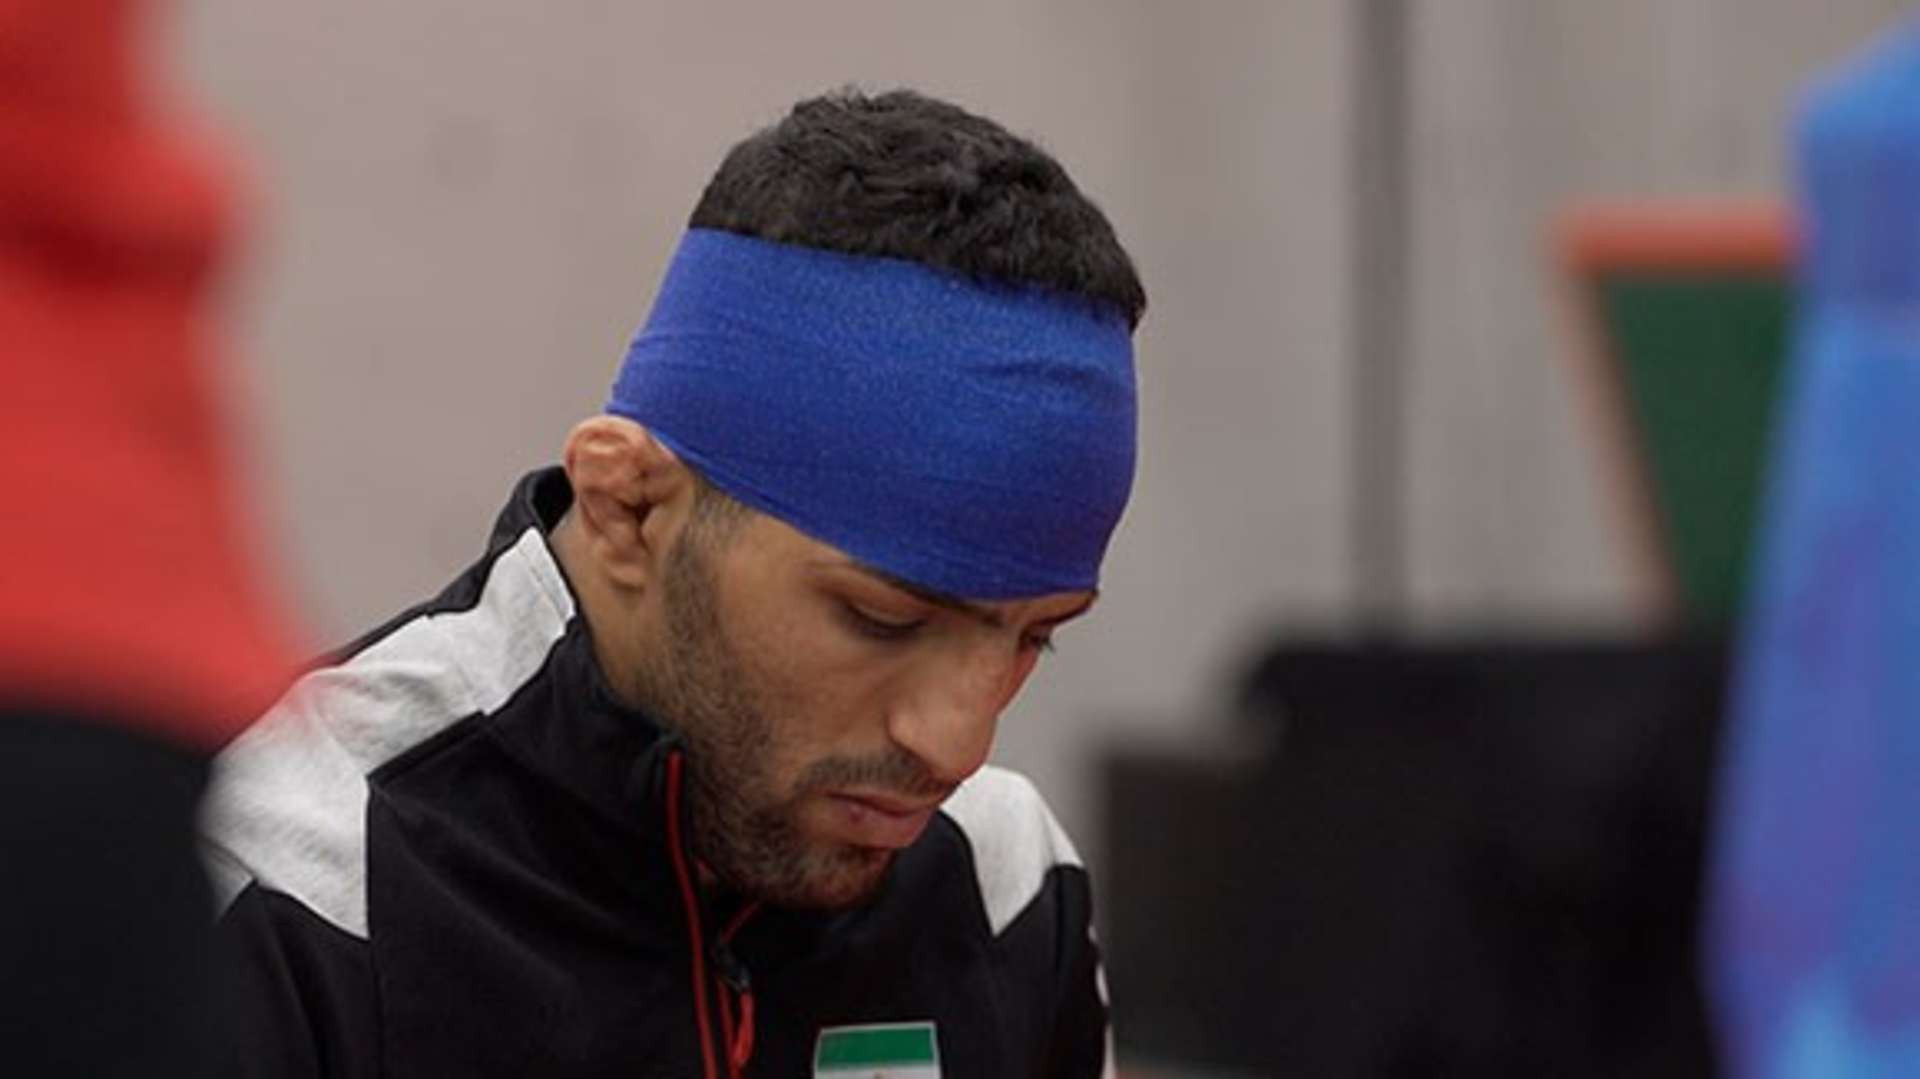 Saeid Mollaei allegedly received calls from Government officials and the President of the Iran National Olympic Committee threatening him and his family if he did not pull out of the World Championships in Tokyo ©IJF